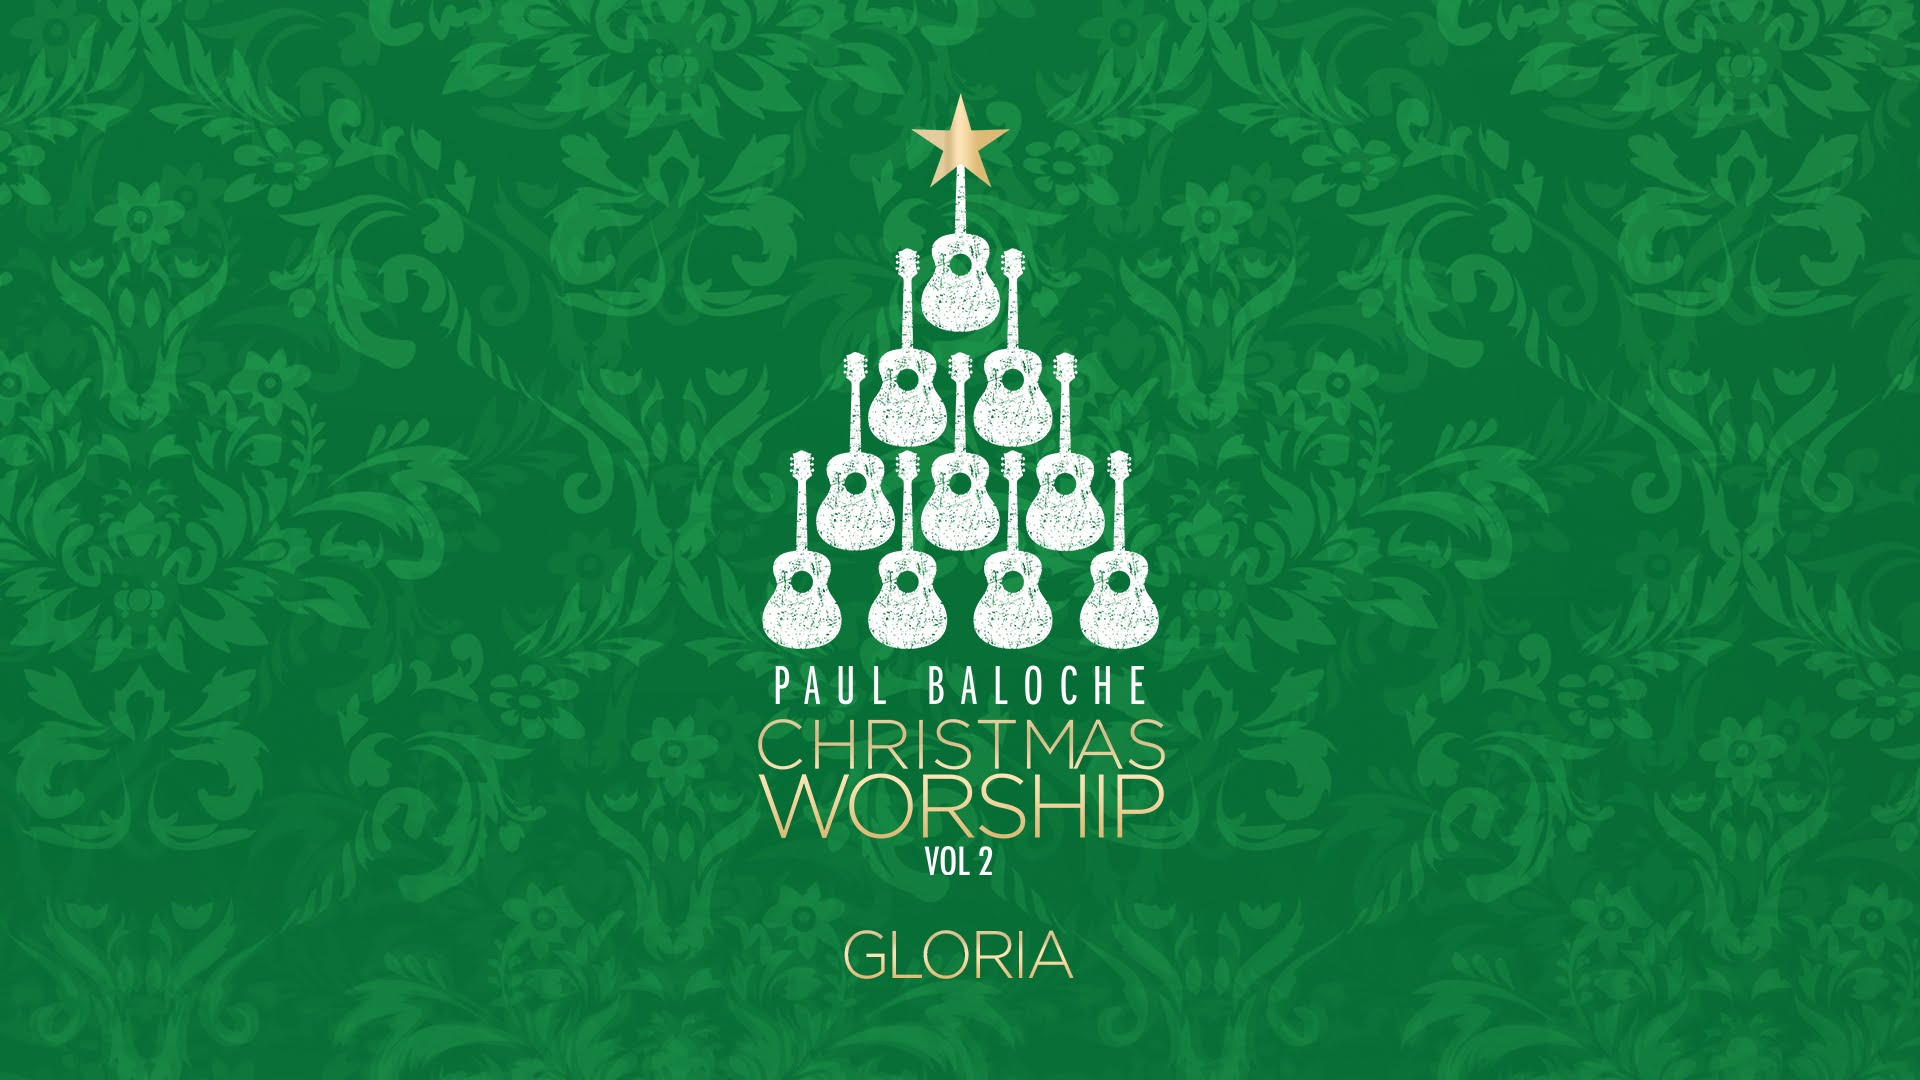 Gloria door Paul Baloche 4